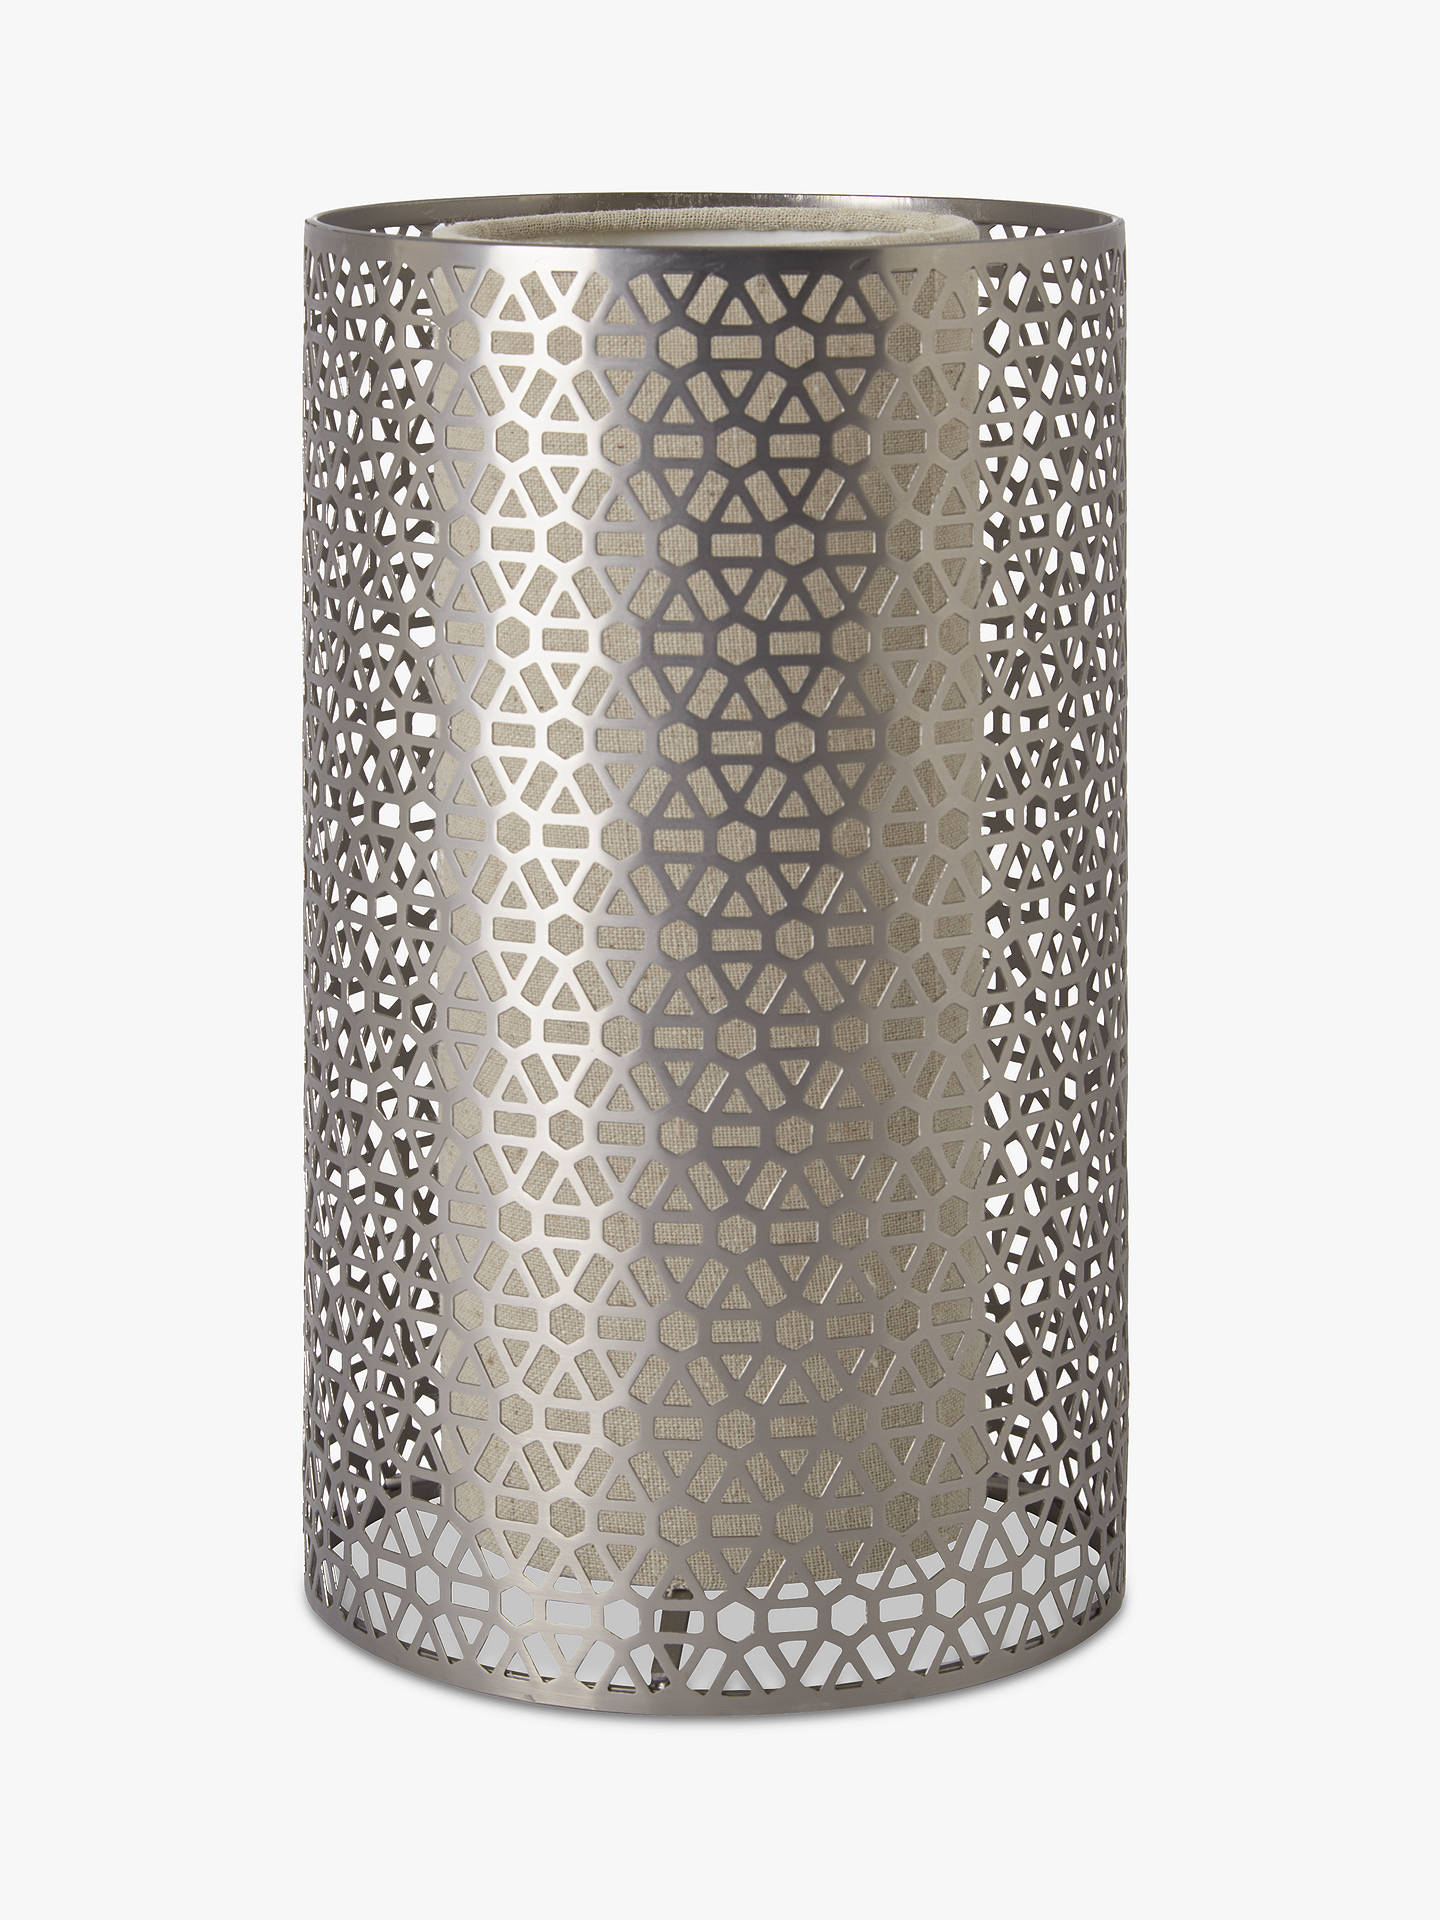 BuyJohn Lewis & Partners Meena Cutwork Lamp with Diffuser Online at johnlewis.com